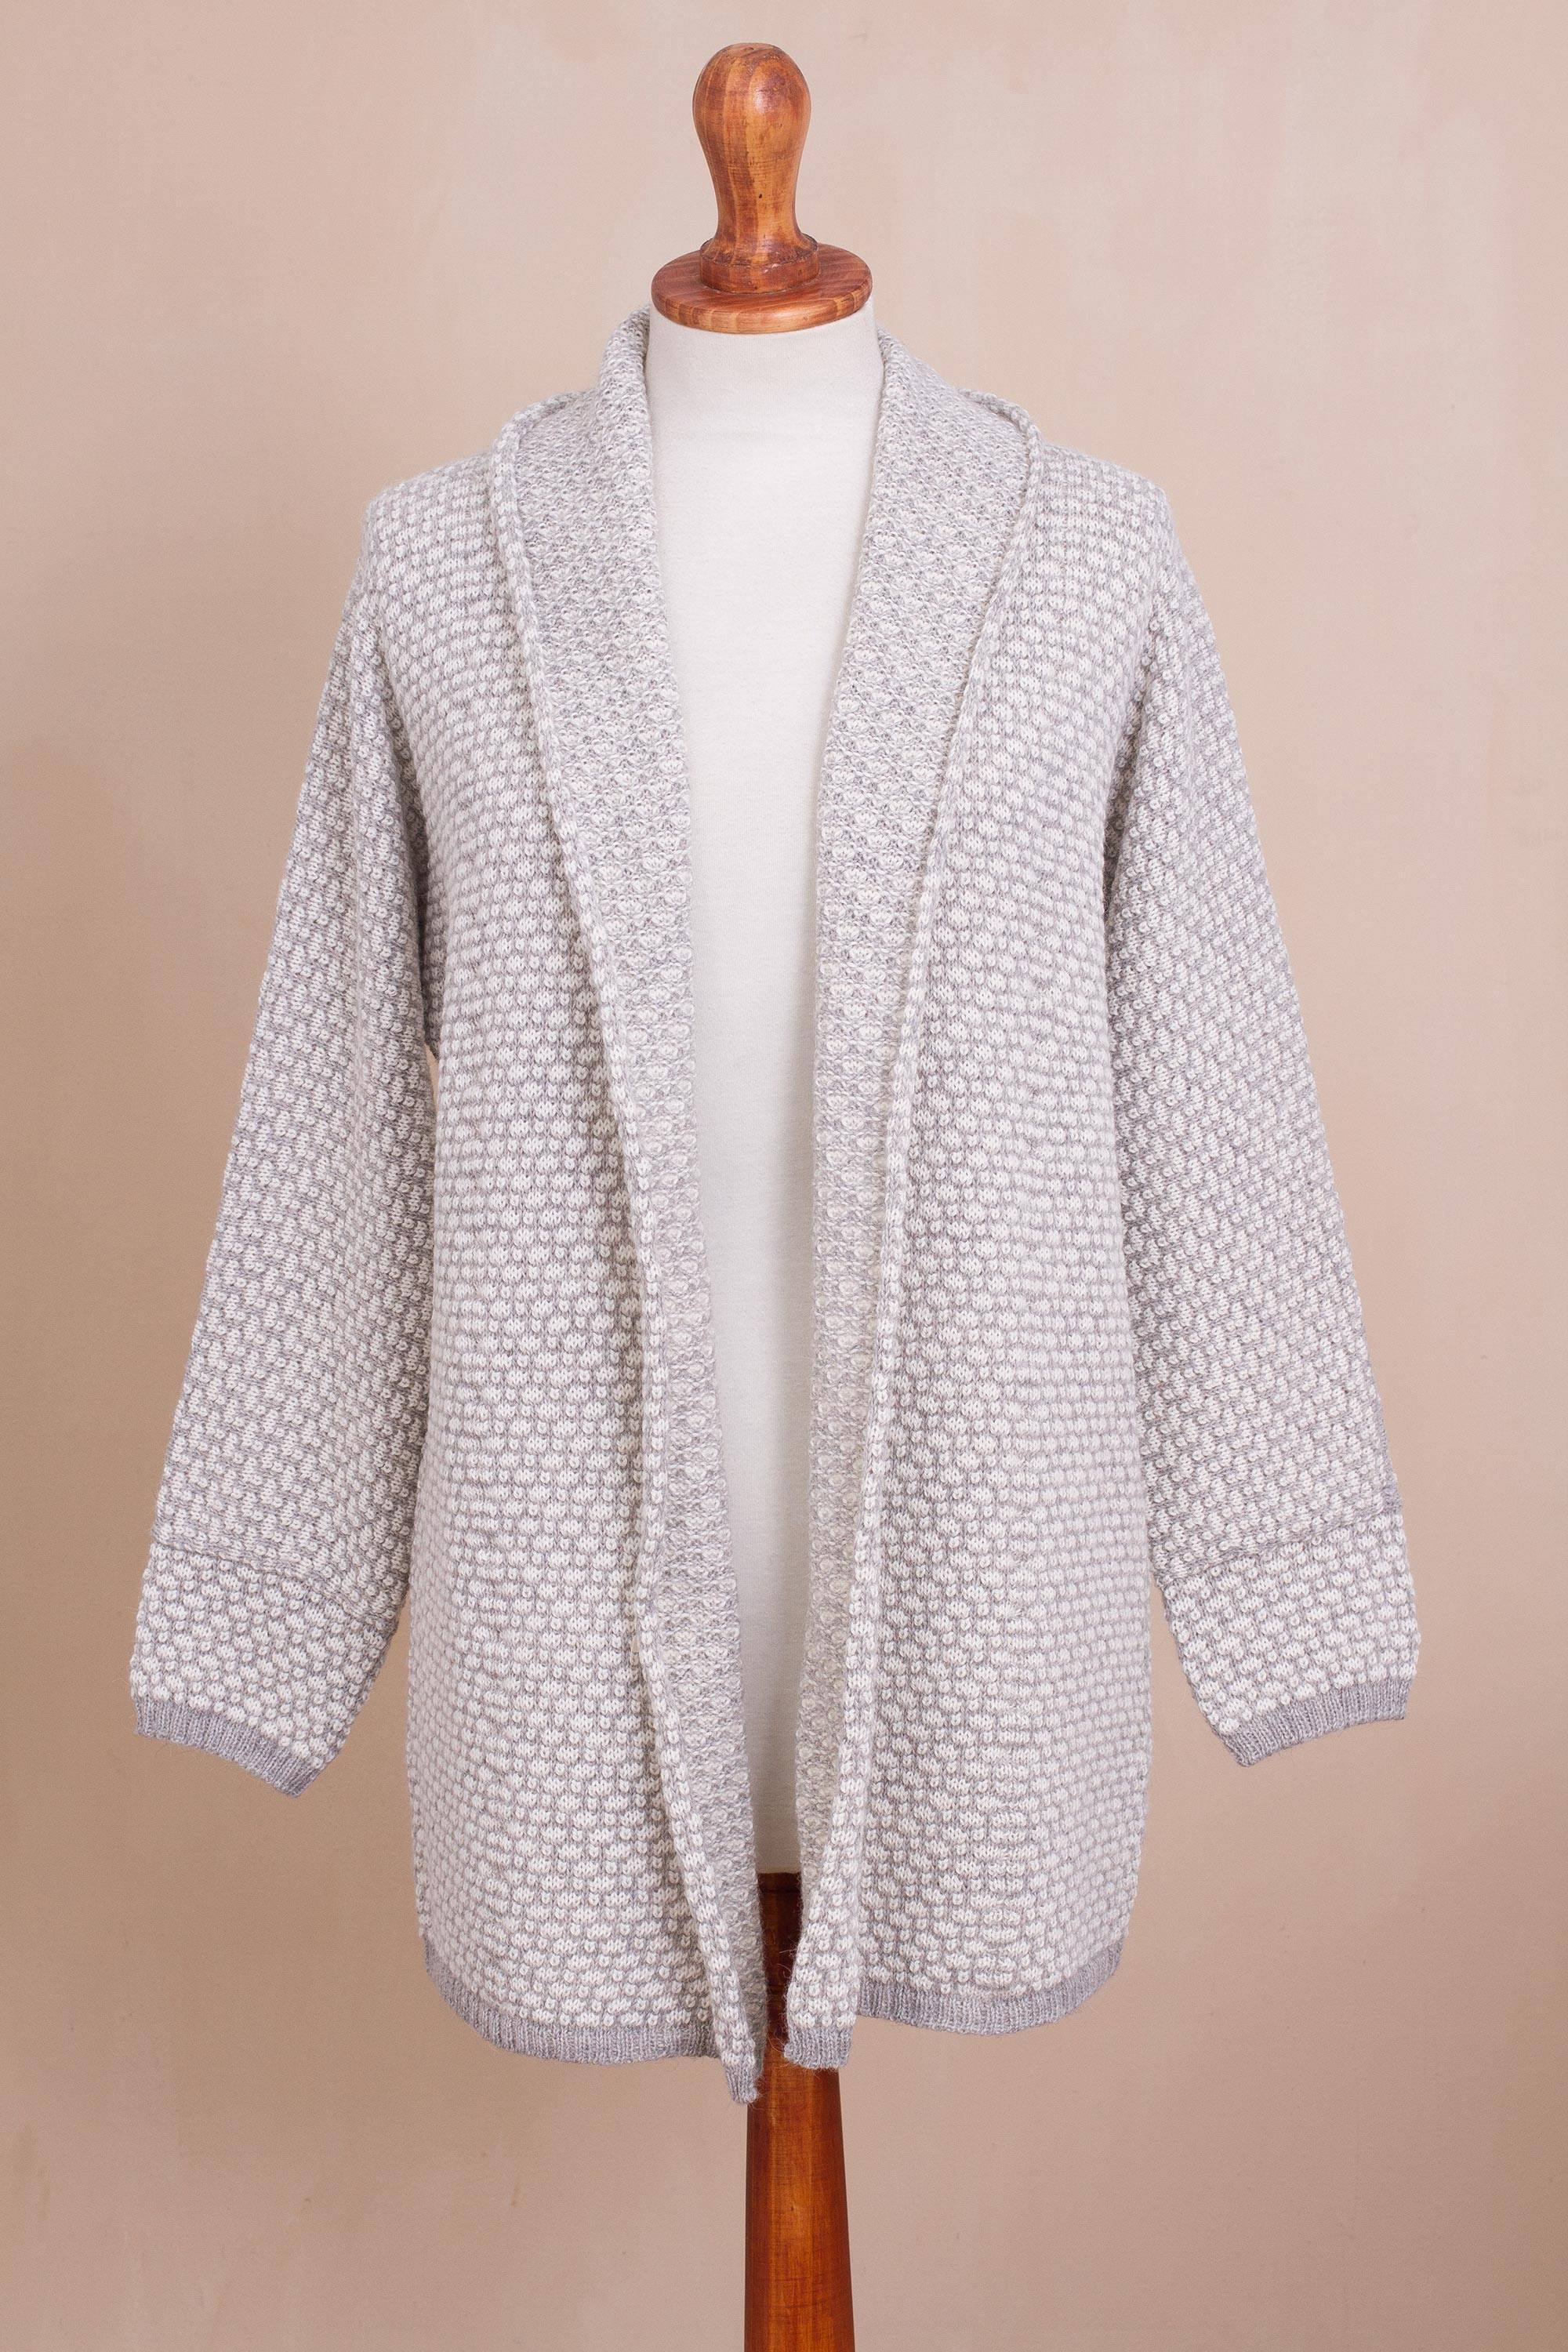 Dove Down Off-White and Grey Alpaca Blend Relaxed Fit Cardigan Sweater Perfect Fall Sweaters